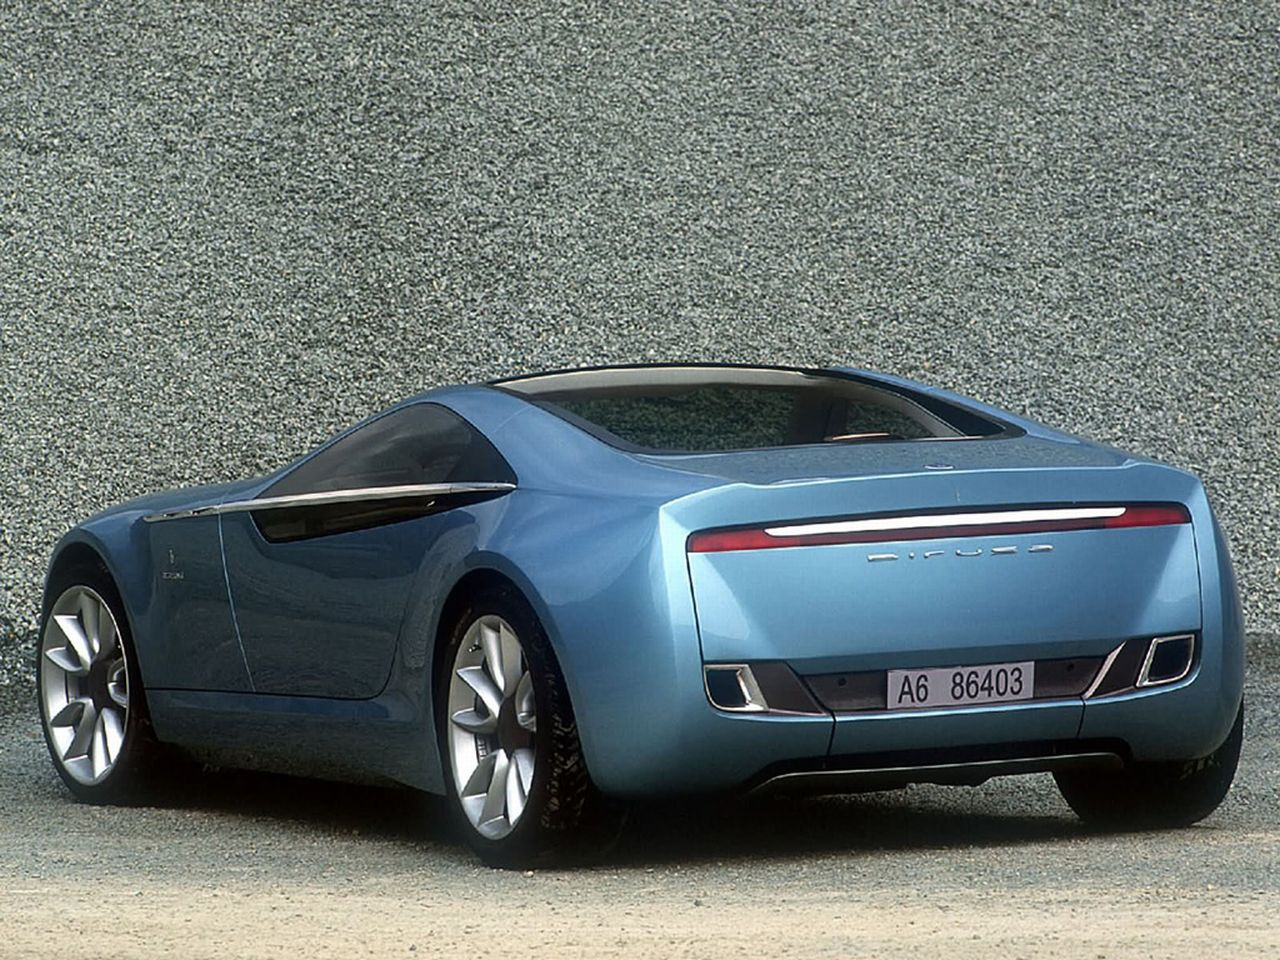 Bose Speakers For Cars >> Old Concept Cars Bertone Birusa Concept